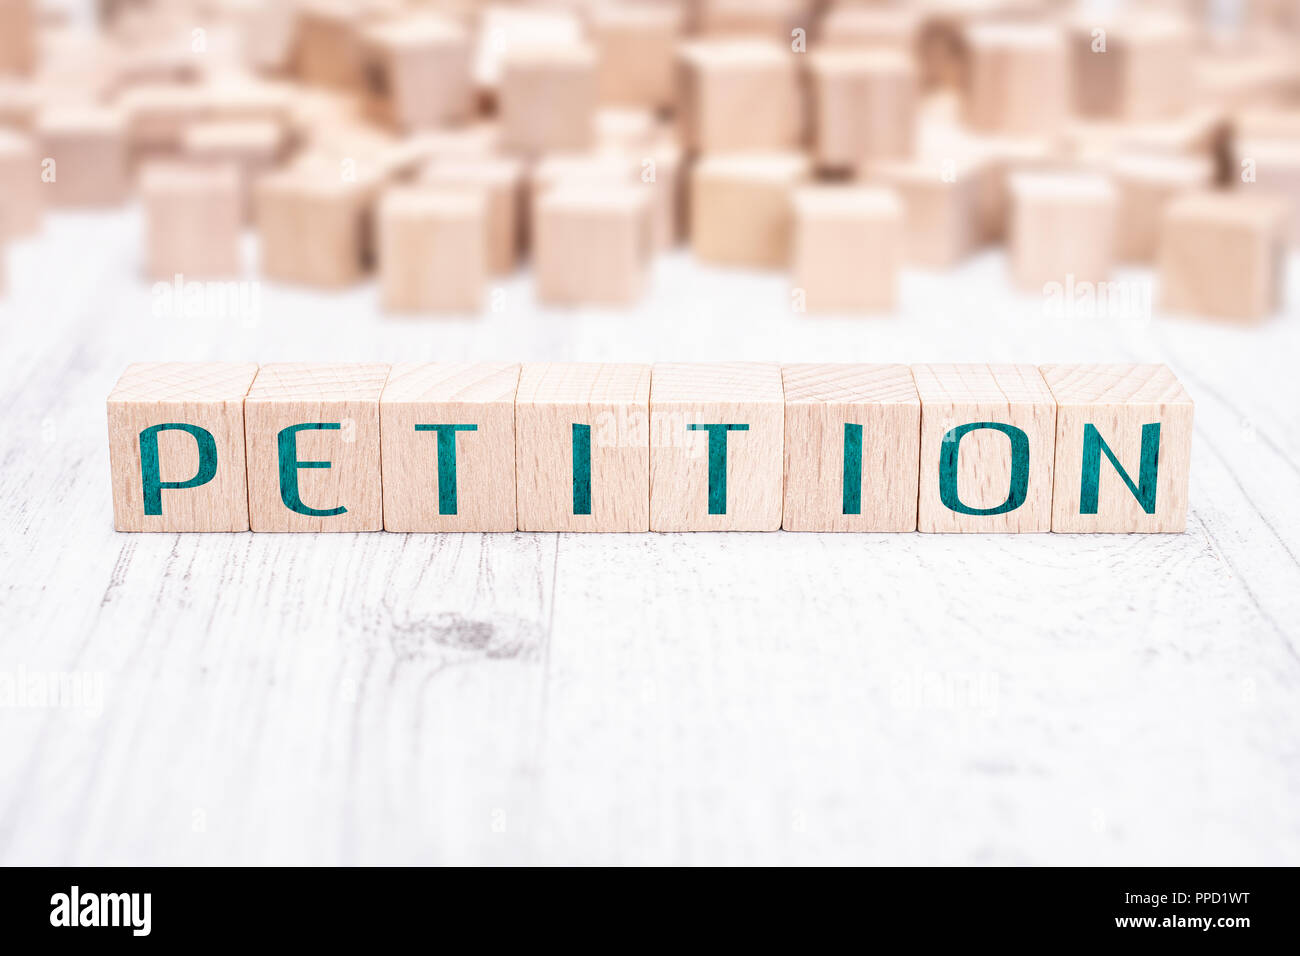 The Word Petition Formed By Wooden Blocks On A White Table - Stock Image